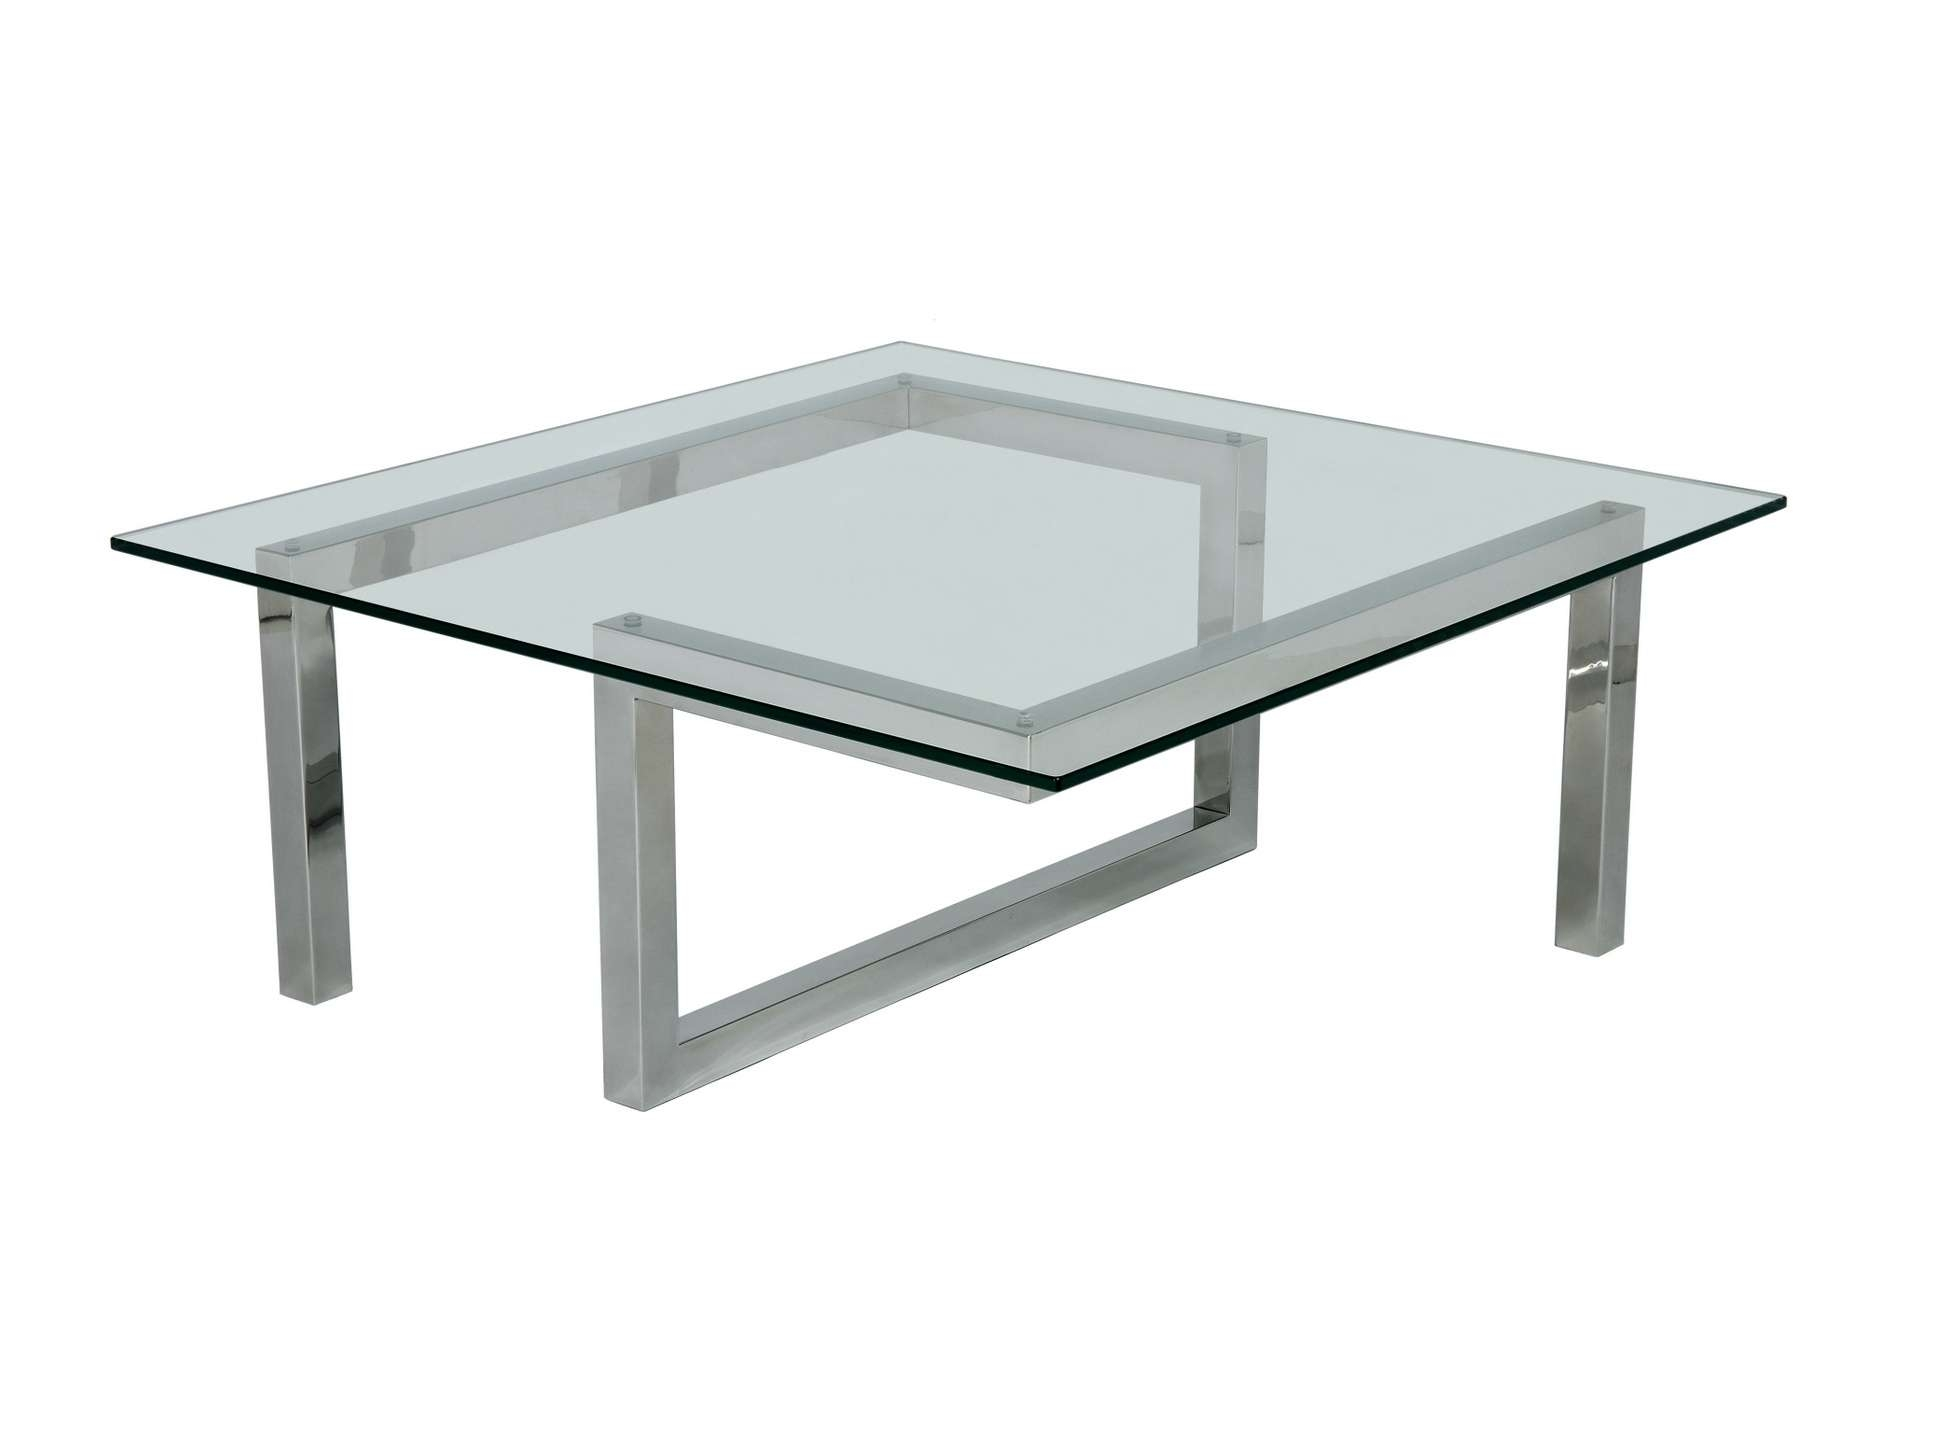 Fashionable Square Glass Coffee Tables With Square Glass Coffee Table For Living Room Decoration – Ruchi Designs (View 9 of 20)